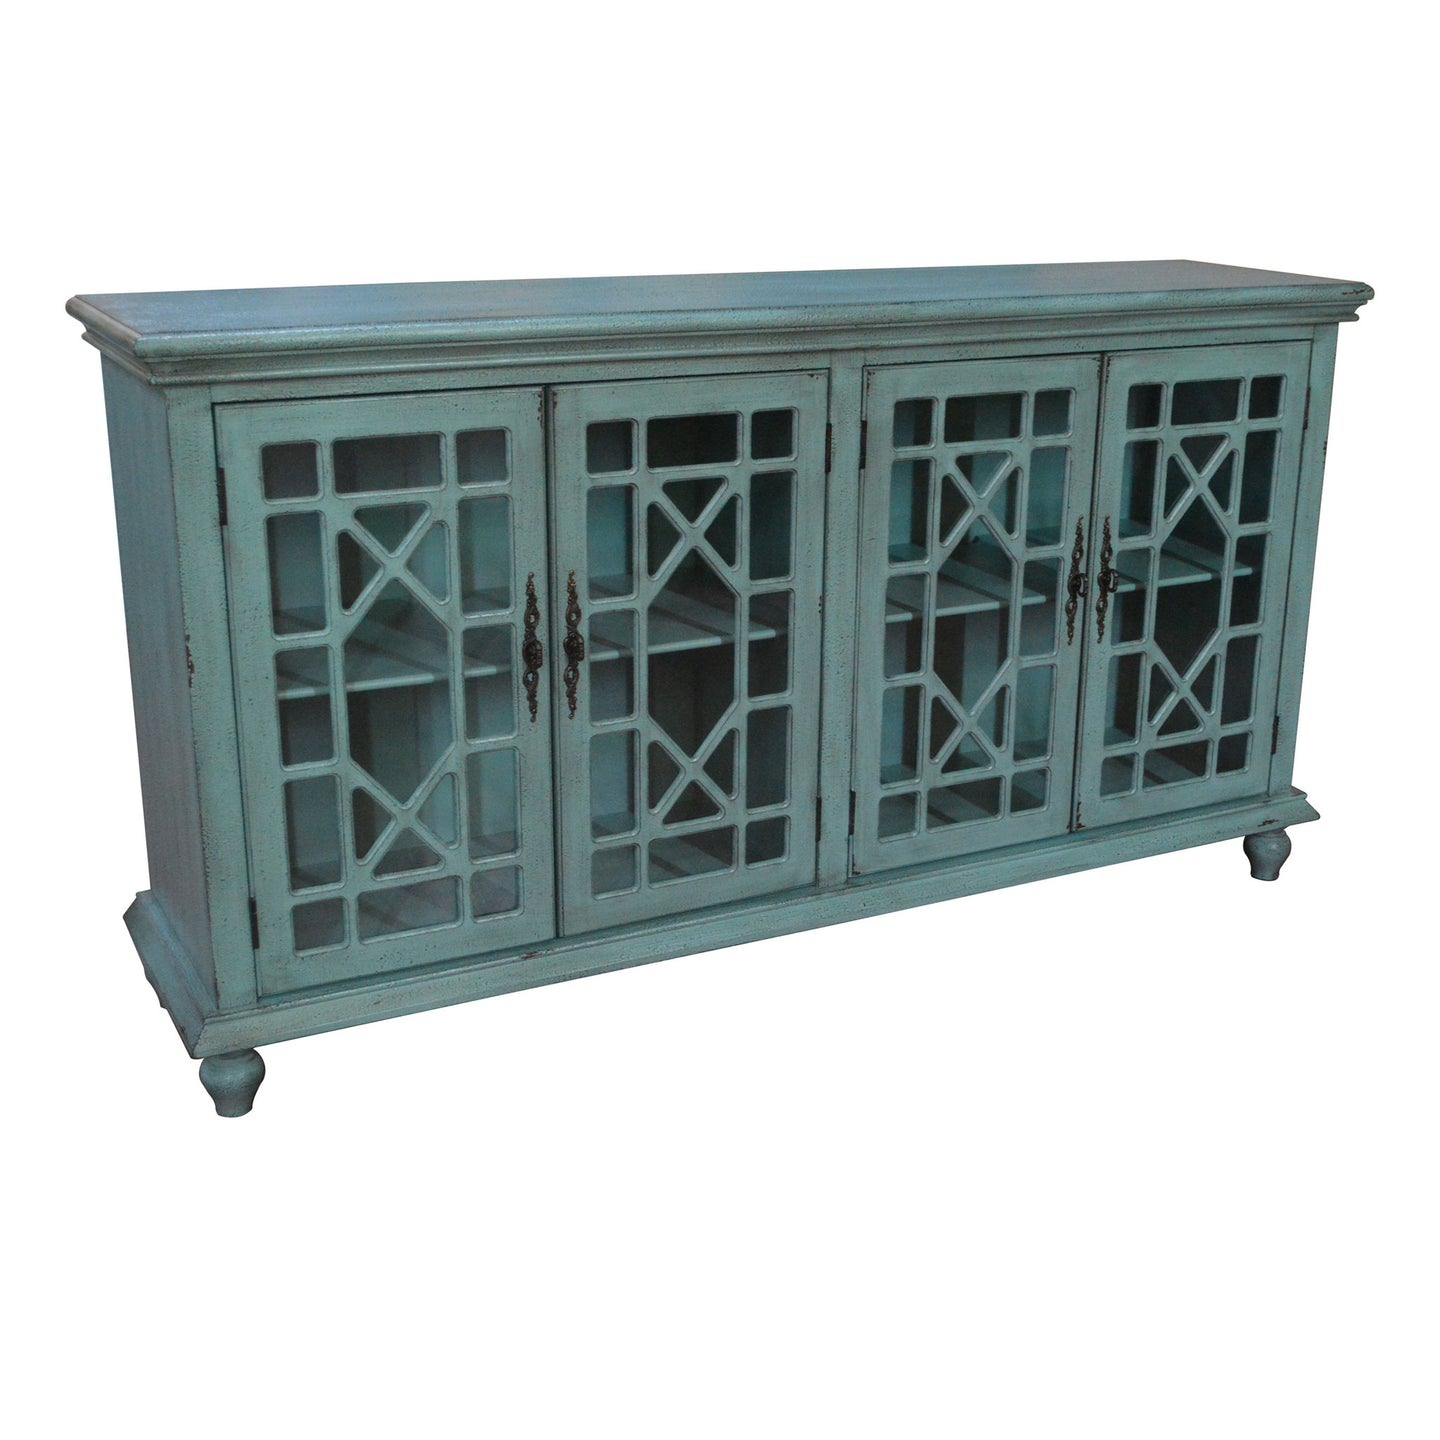 Mendenhall 4 Geometric Glass Door Textured Teal Sideboard - The Rustic Furniture Store